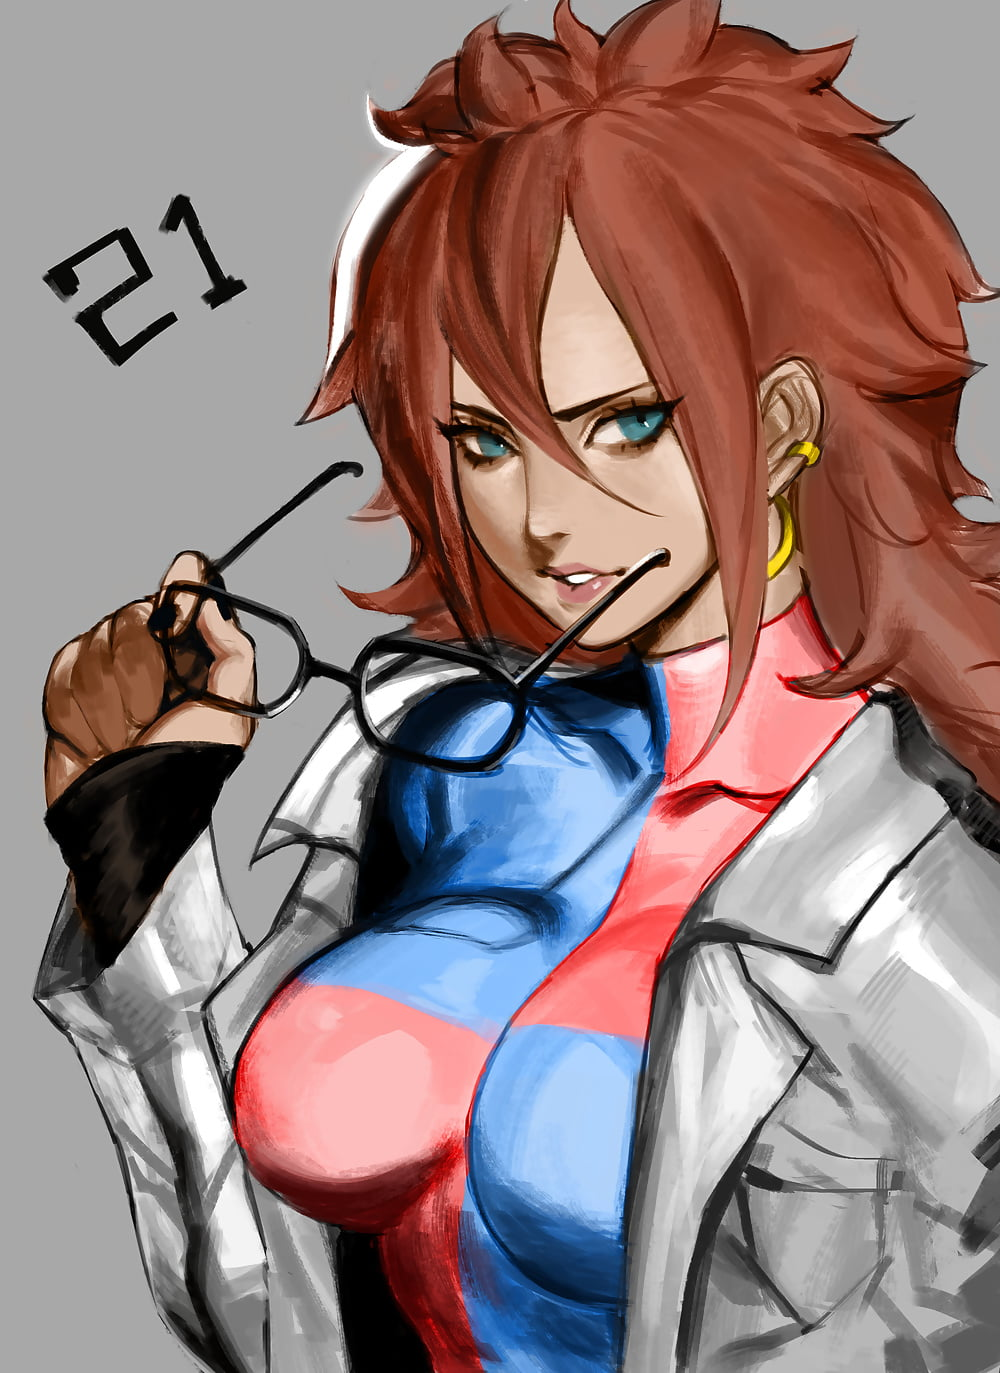 Hot Android 21 Hentai